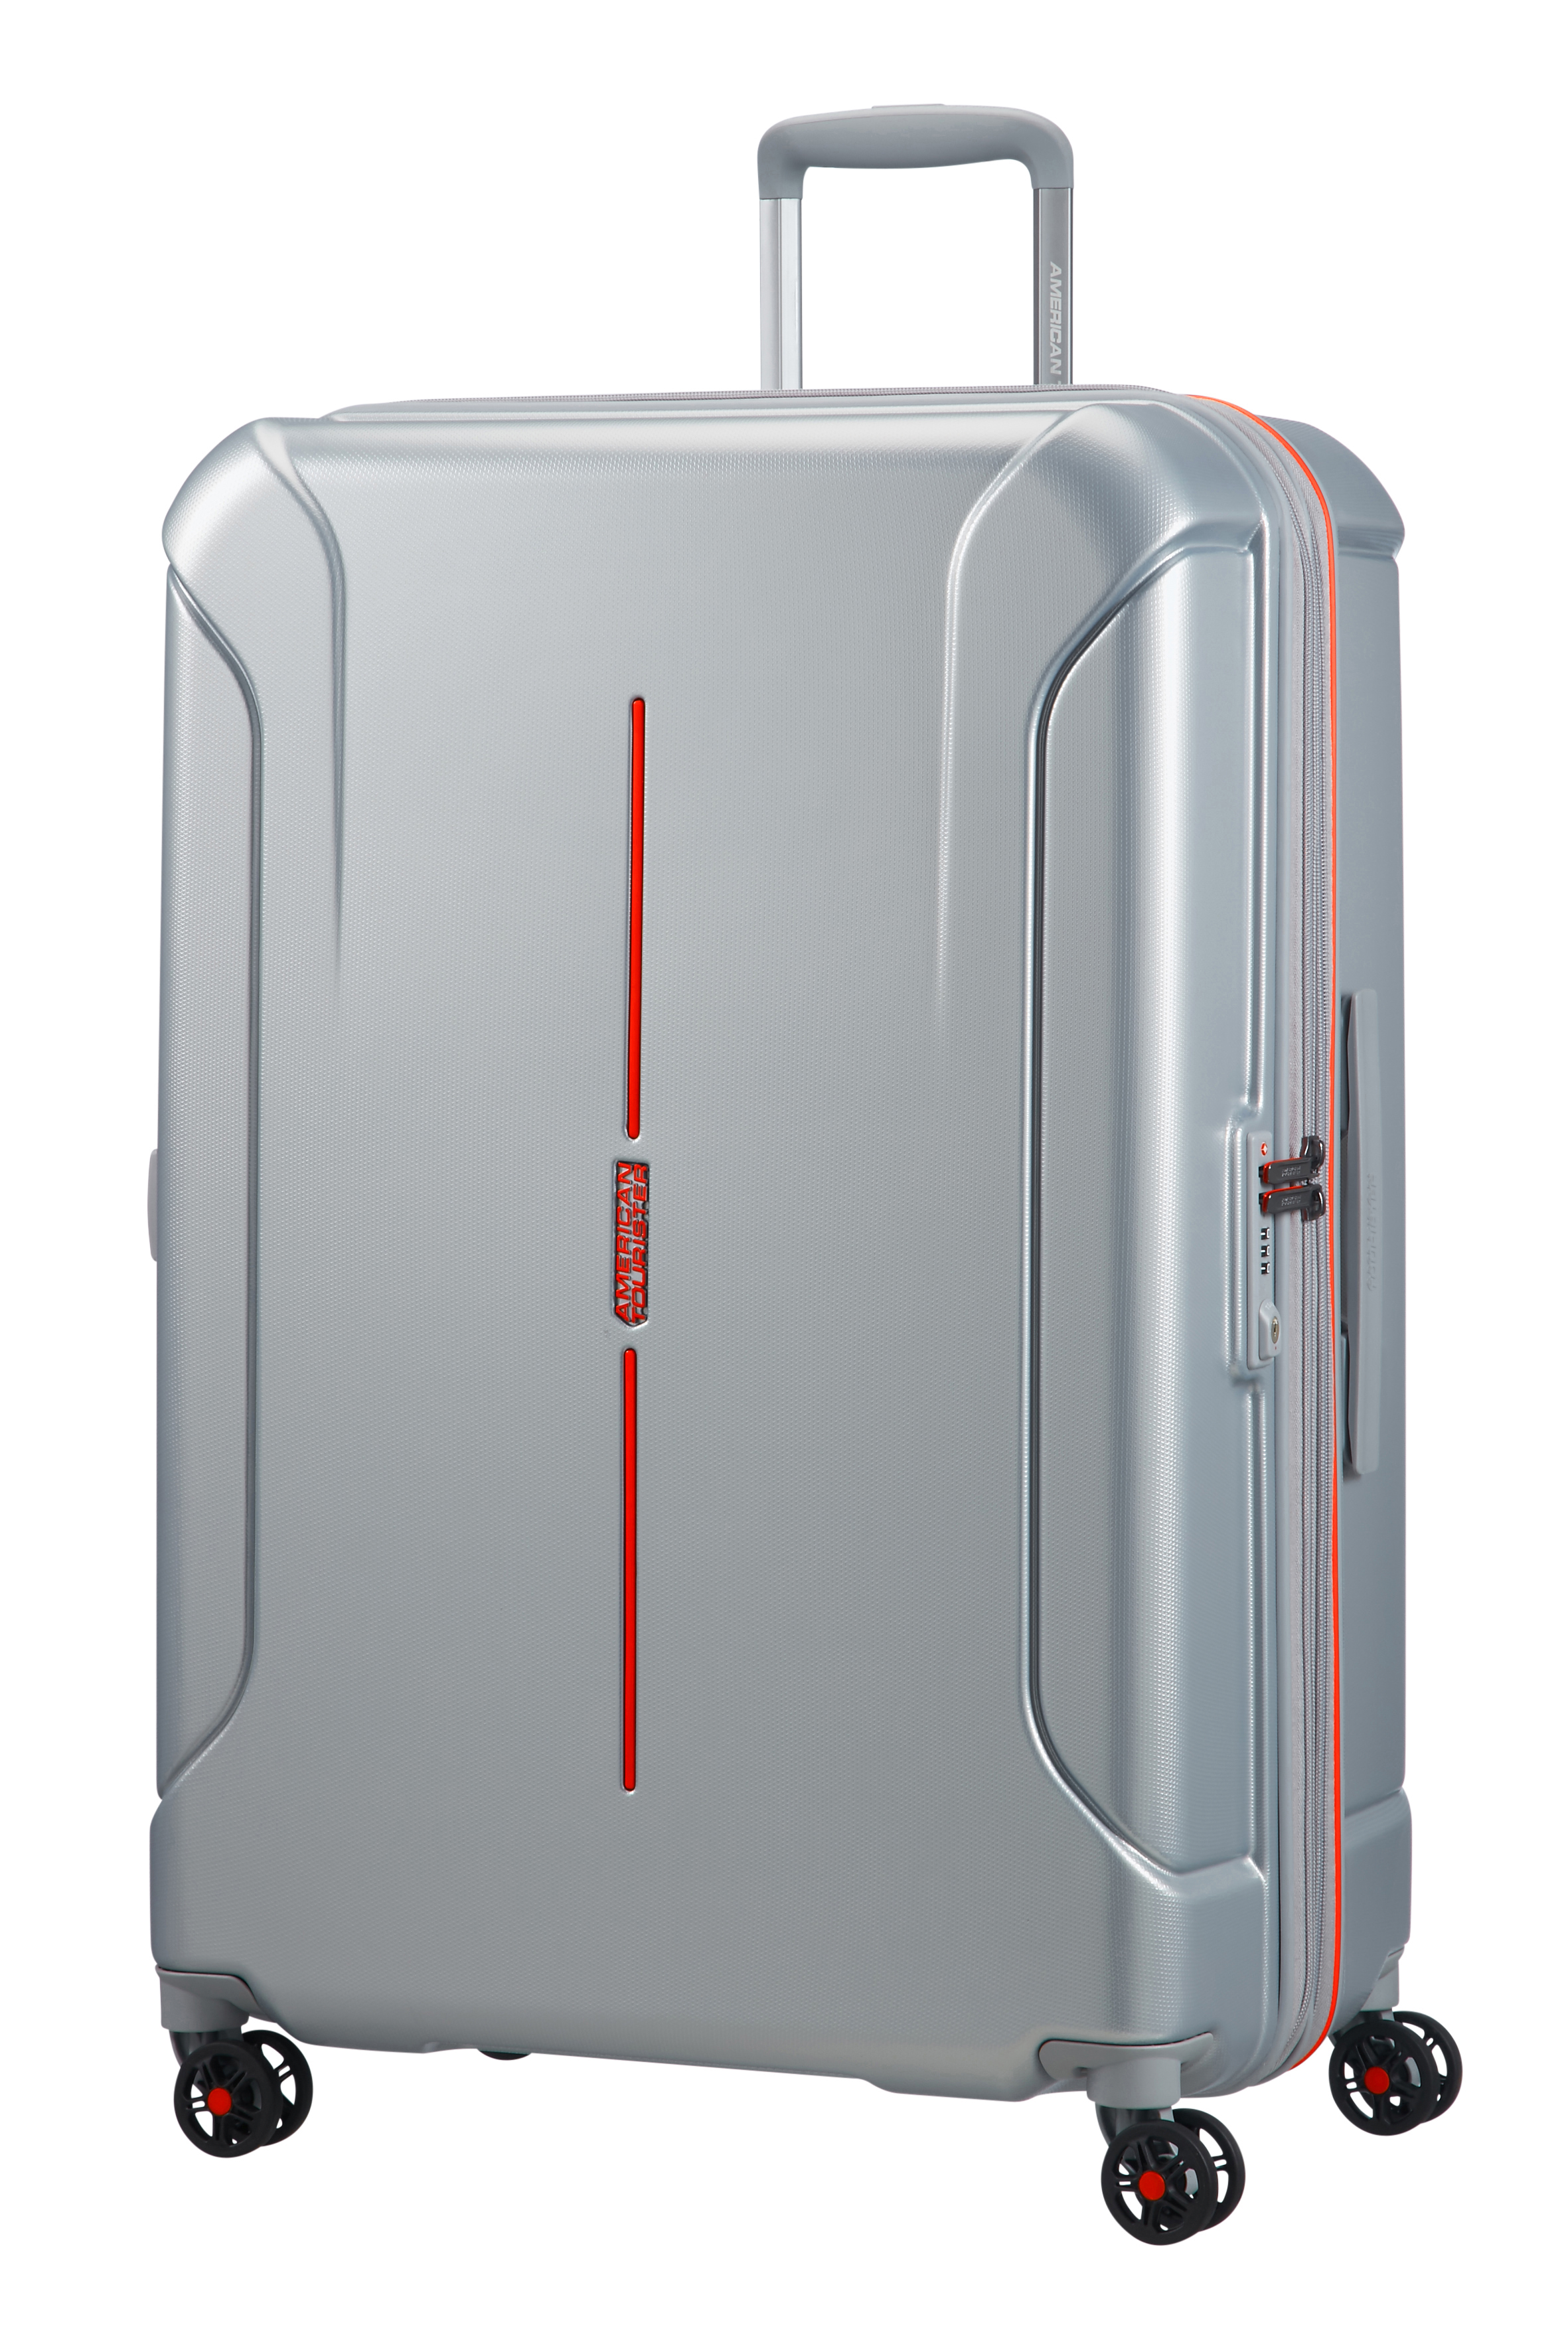 American Tourister Technum Hardside Spinner Luggage, 28''